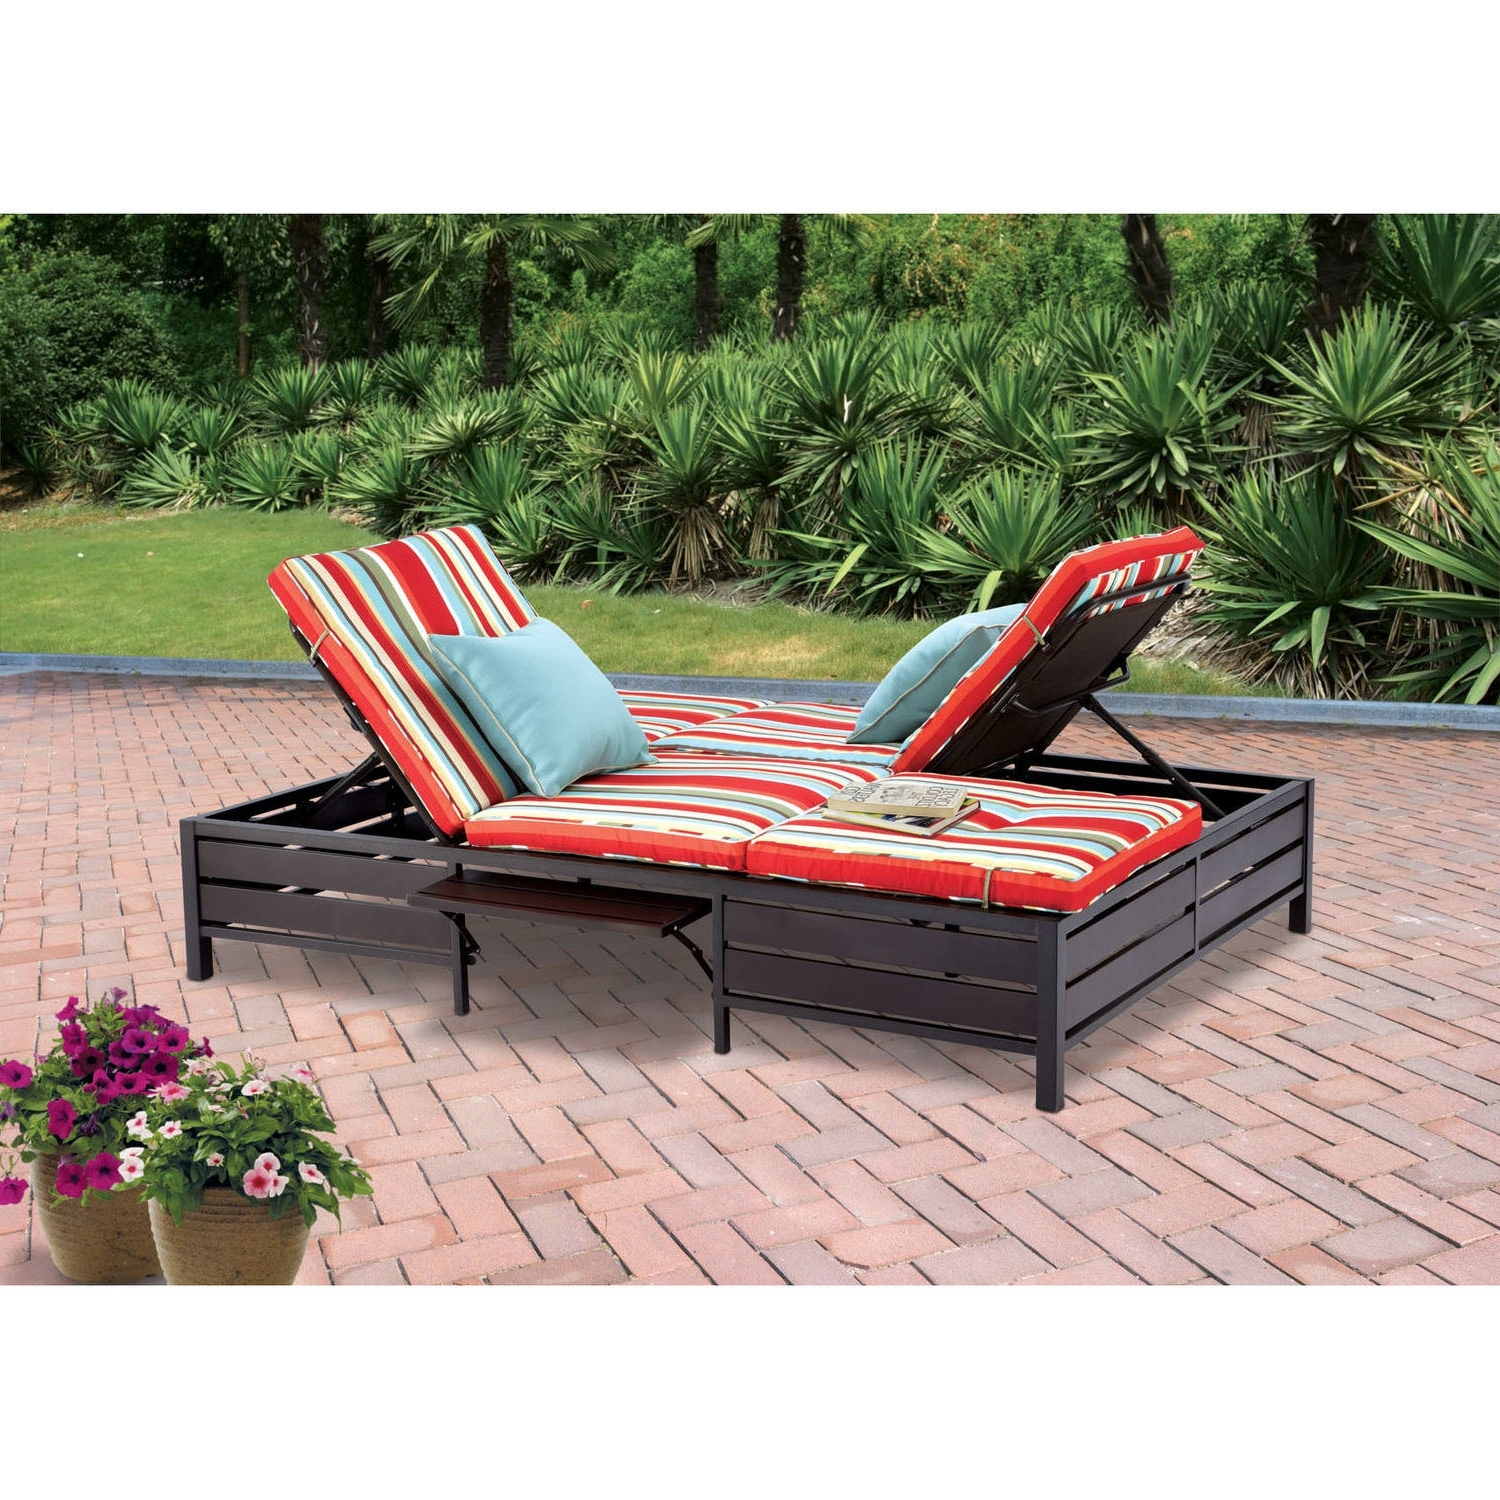 Most Popular Mainstays Outdoor Double Chaise Lounger, Stripe, Seats 2 – Walmart For Walmart Outdoor Chaise Lounges (View 2 of 15)